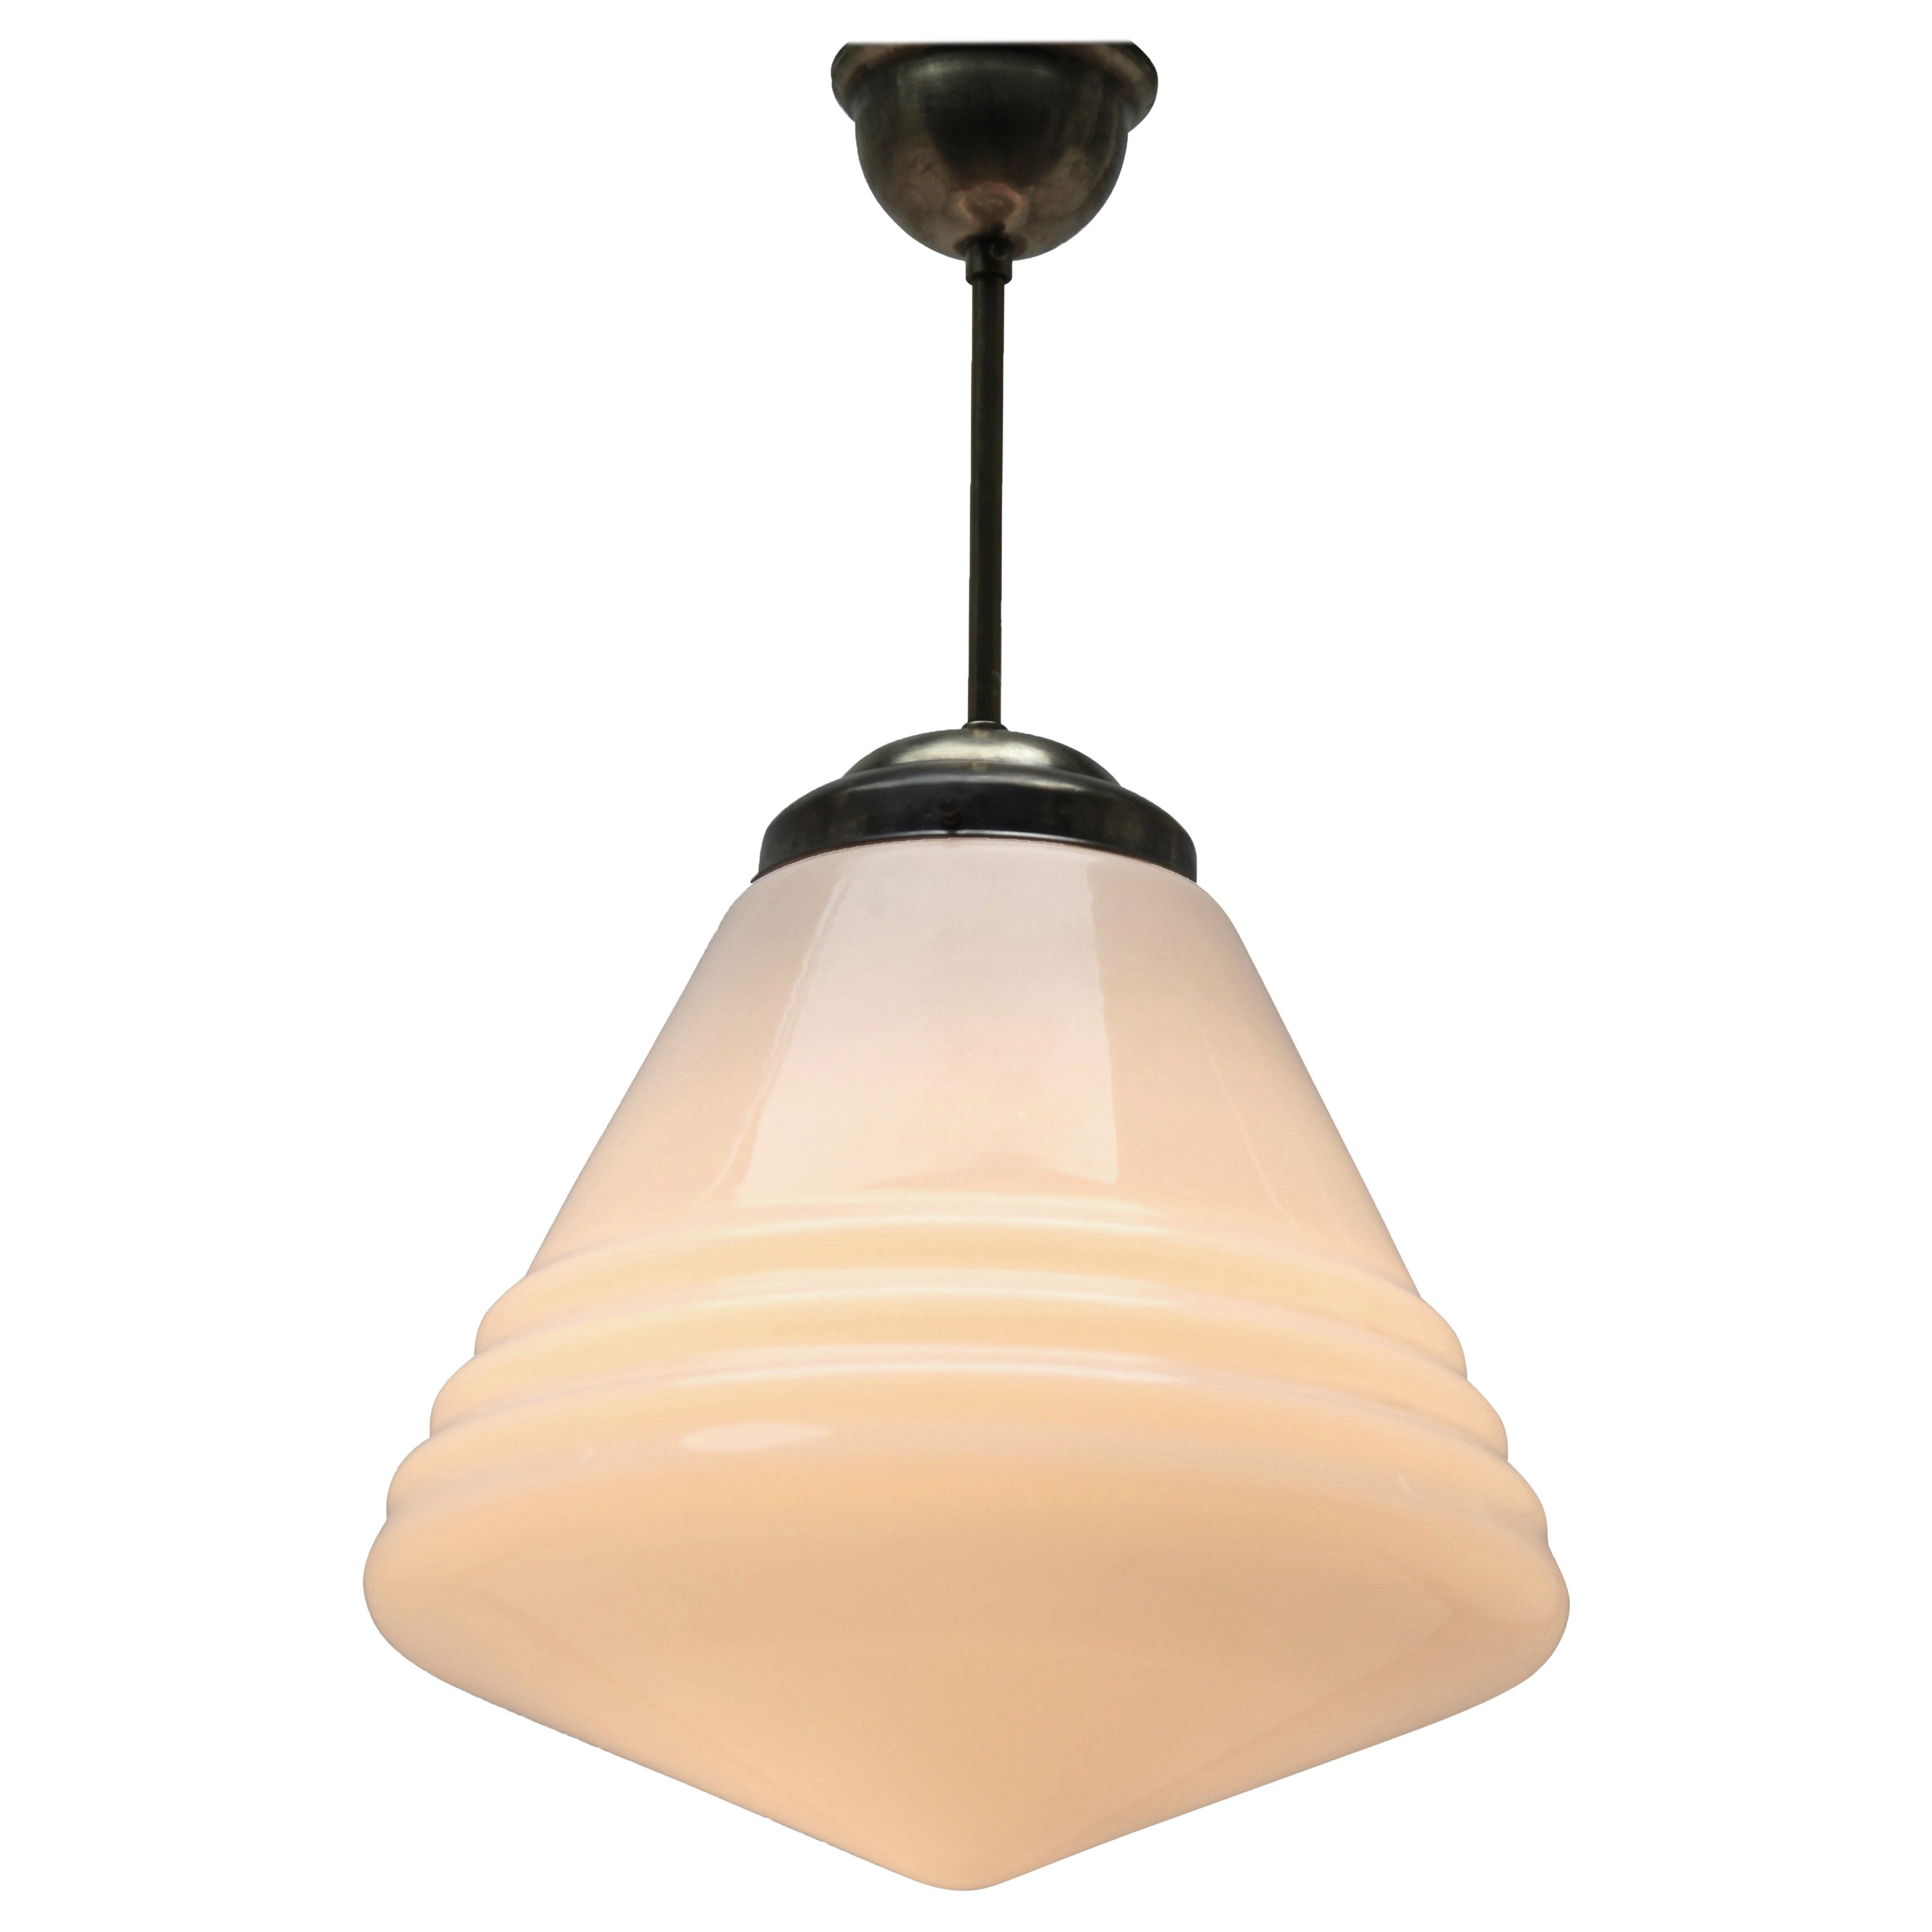 Phillips Pendant Stem Lamp with Large Stepped Opaline Shade, 1930s, Netherlands